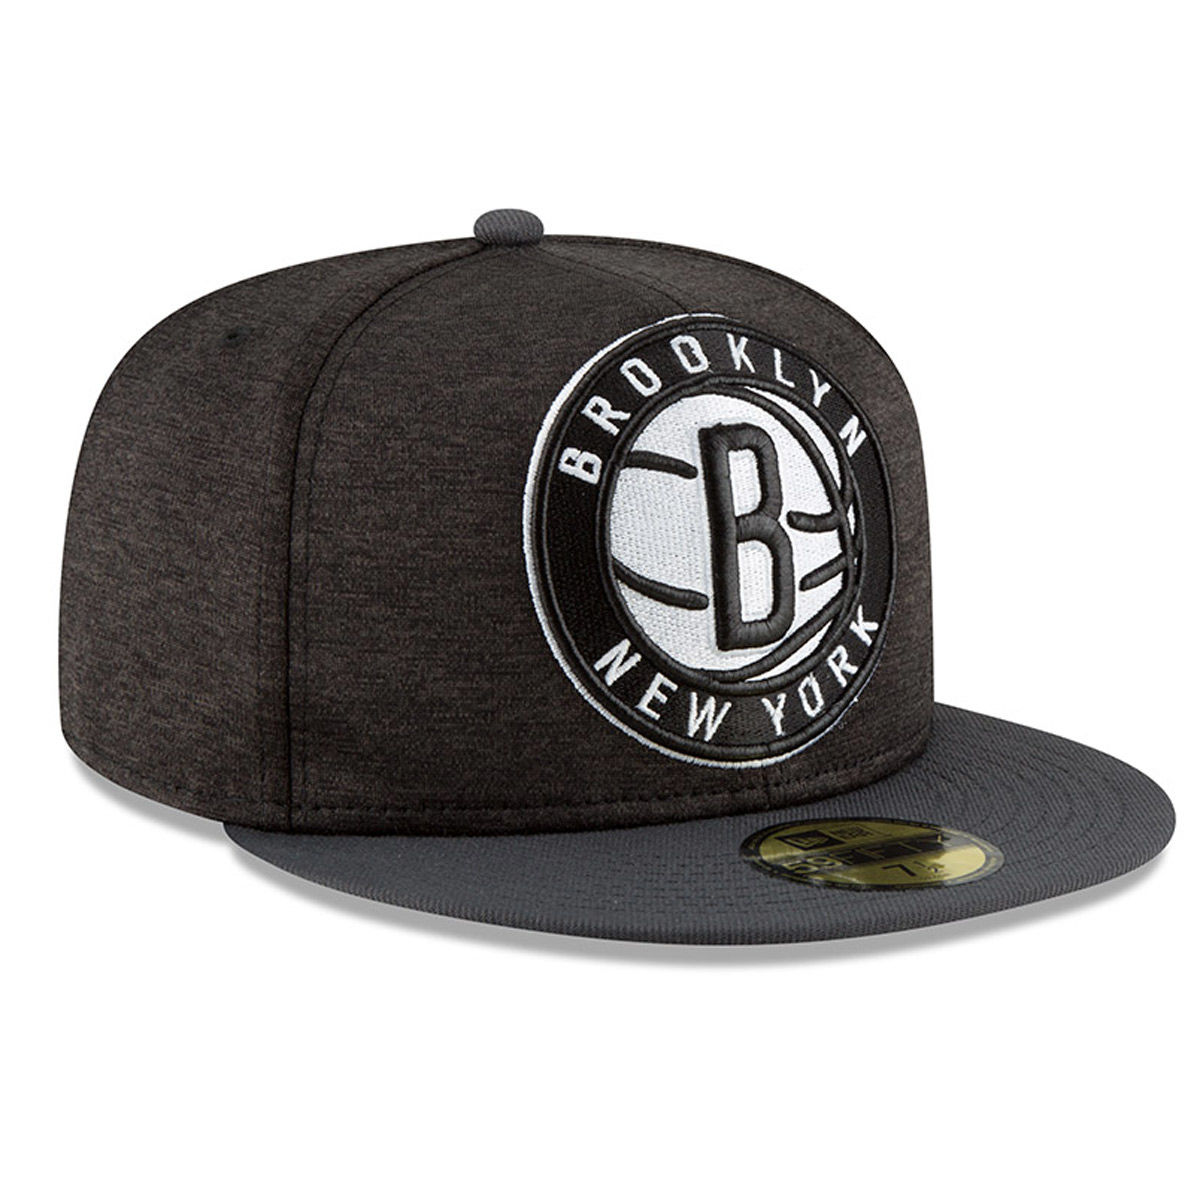 Brooklyn Nets Adult 59FIFTY Fitted Hat